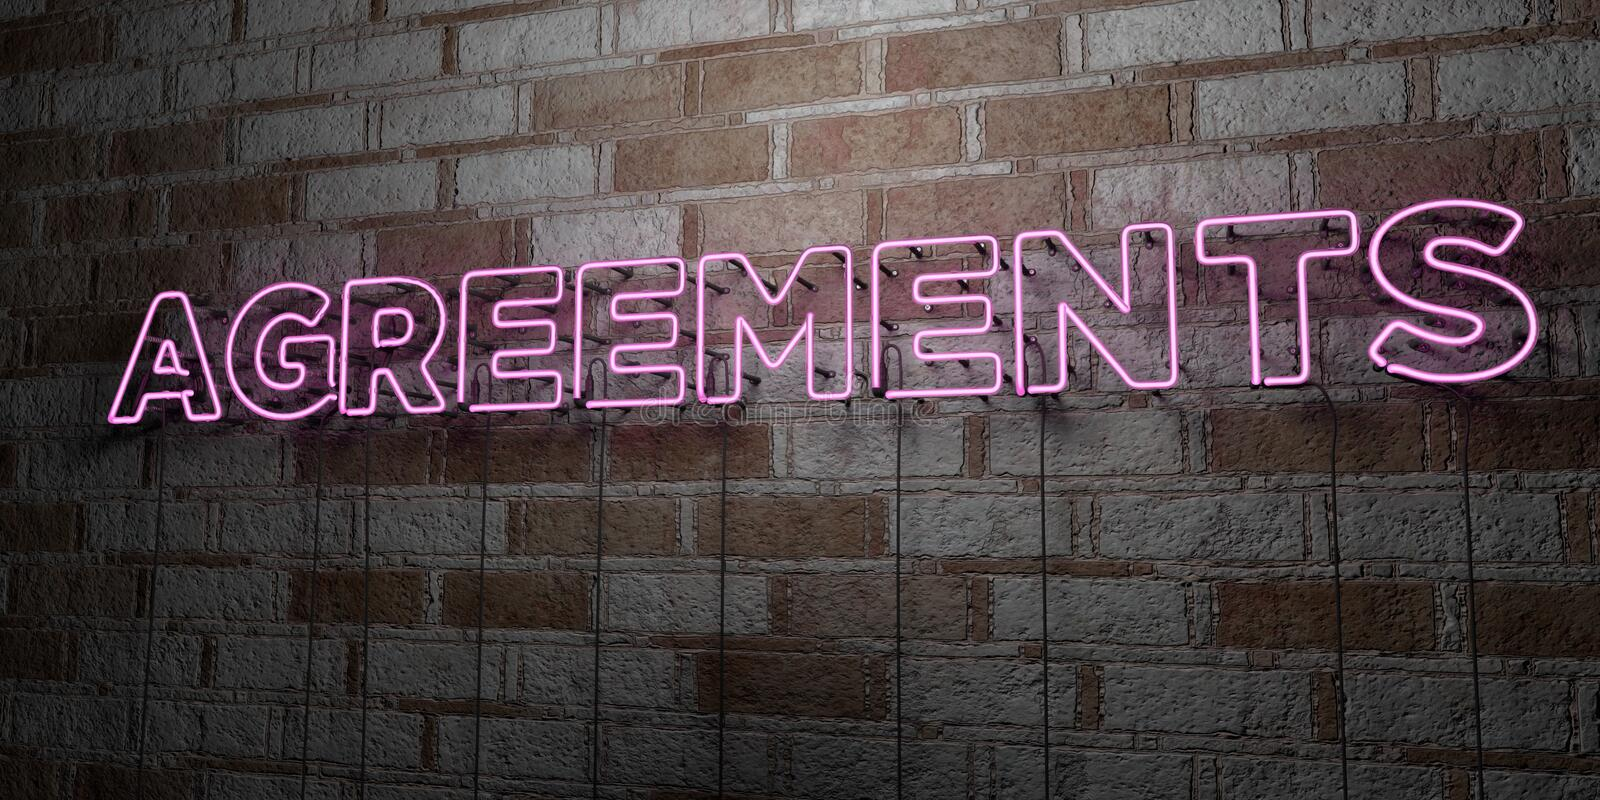 AGREEMENTS - Glowing Neon Sign on stonework wall - 3D rendered royalty free stock illustration. Can be used for online banner ads and direct mailers vector illustration